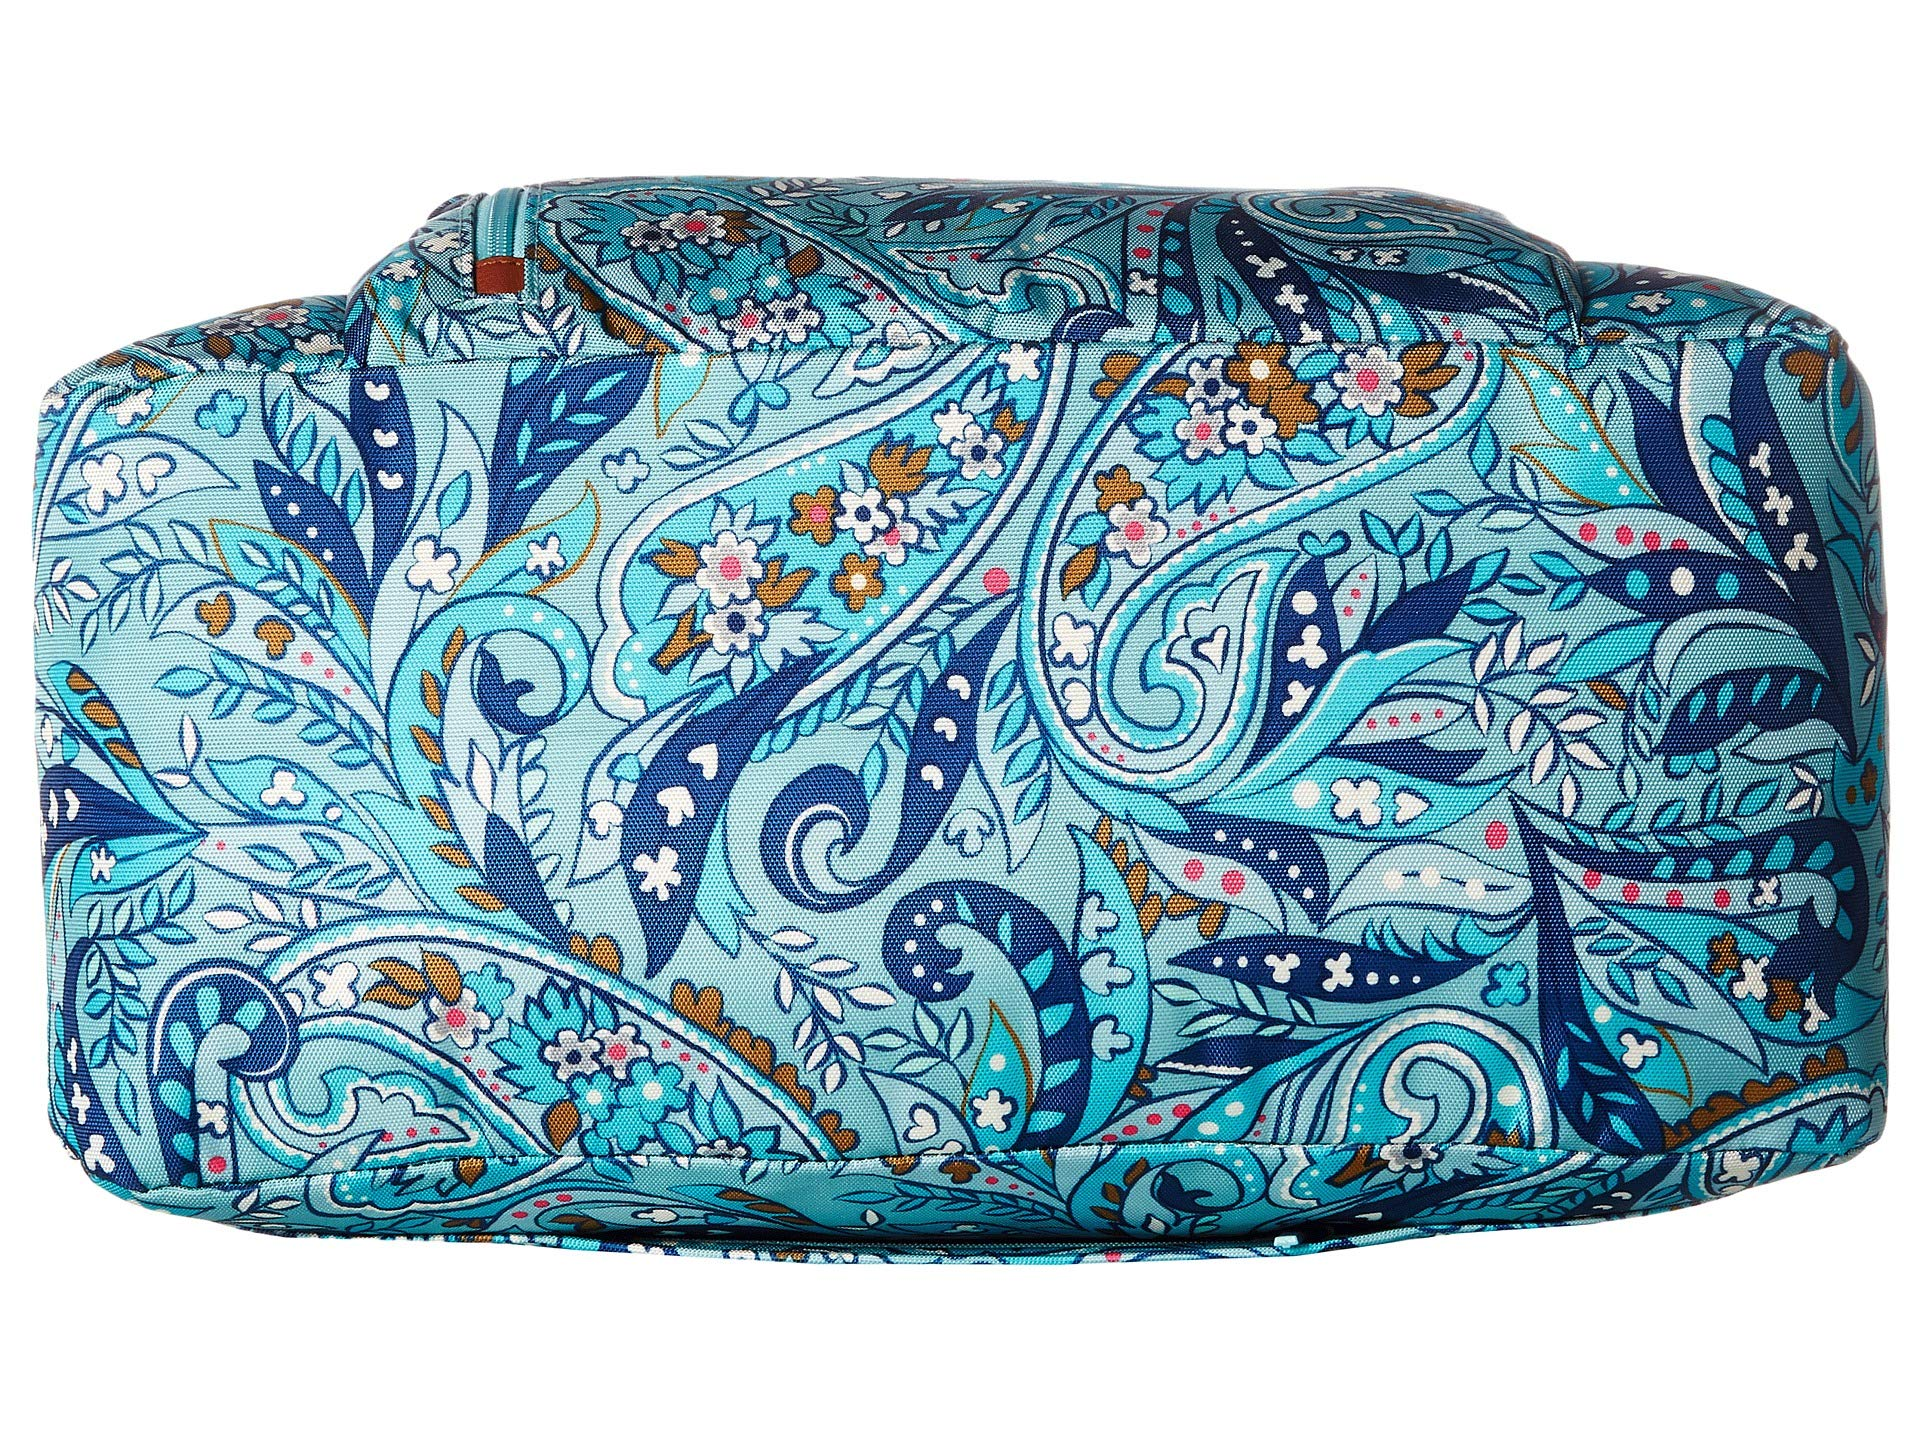 Compact Lighten Paisley Daisy Weekender Up Bradley Vera OUAwqp6p